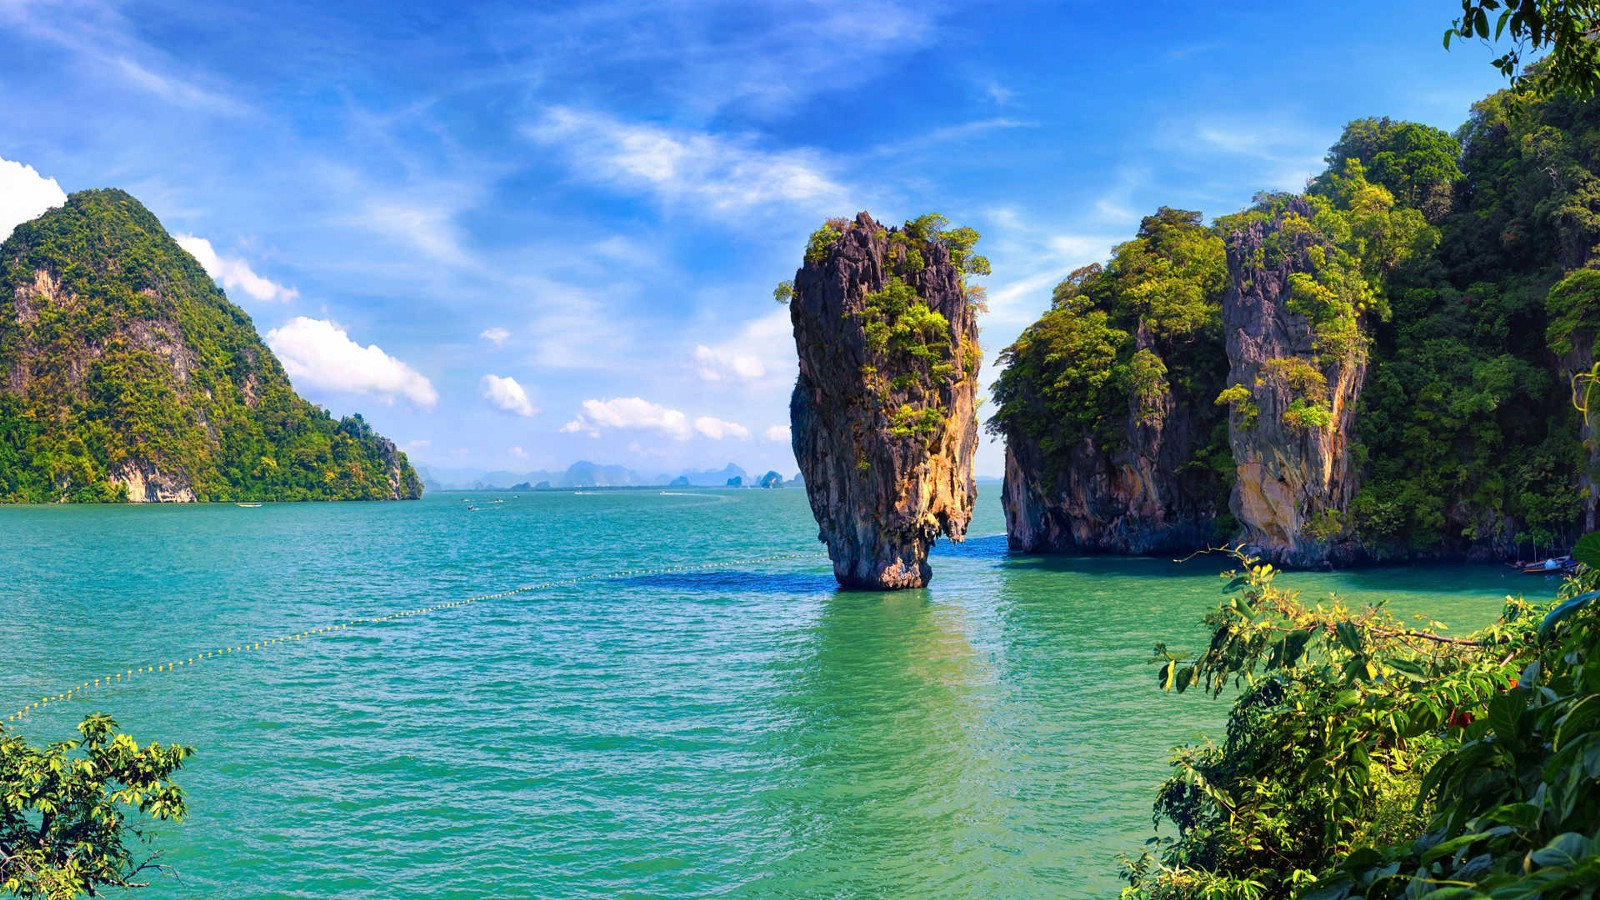 Bangkok A Gateway To Some Of The World S Best Beaches